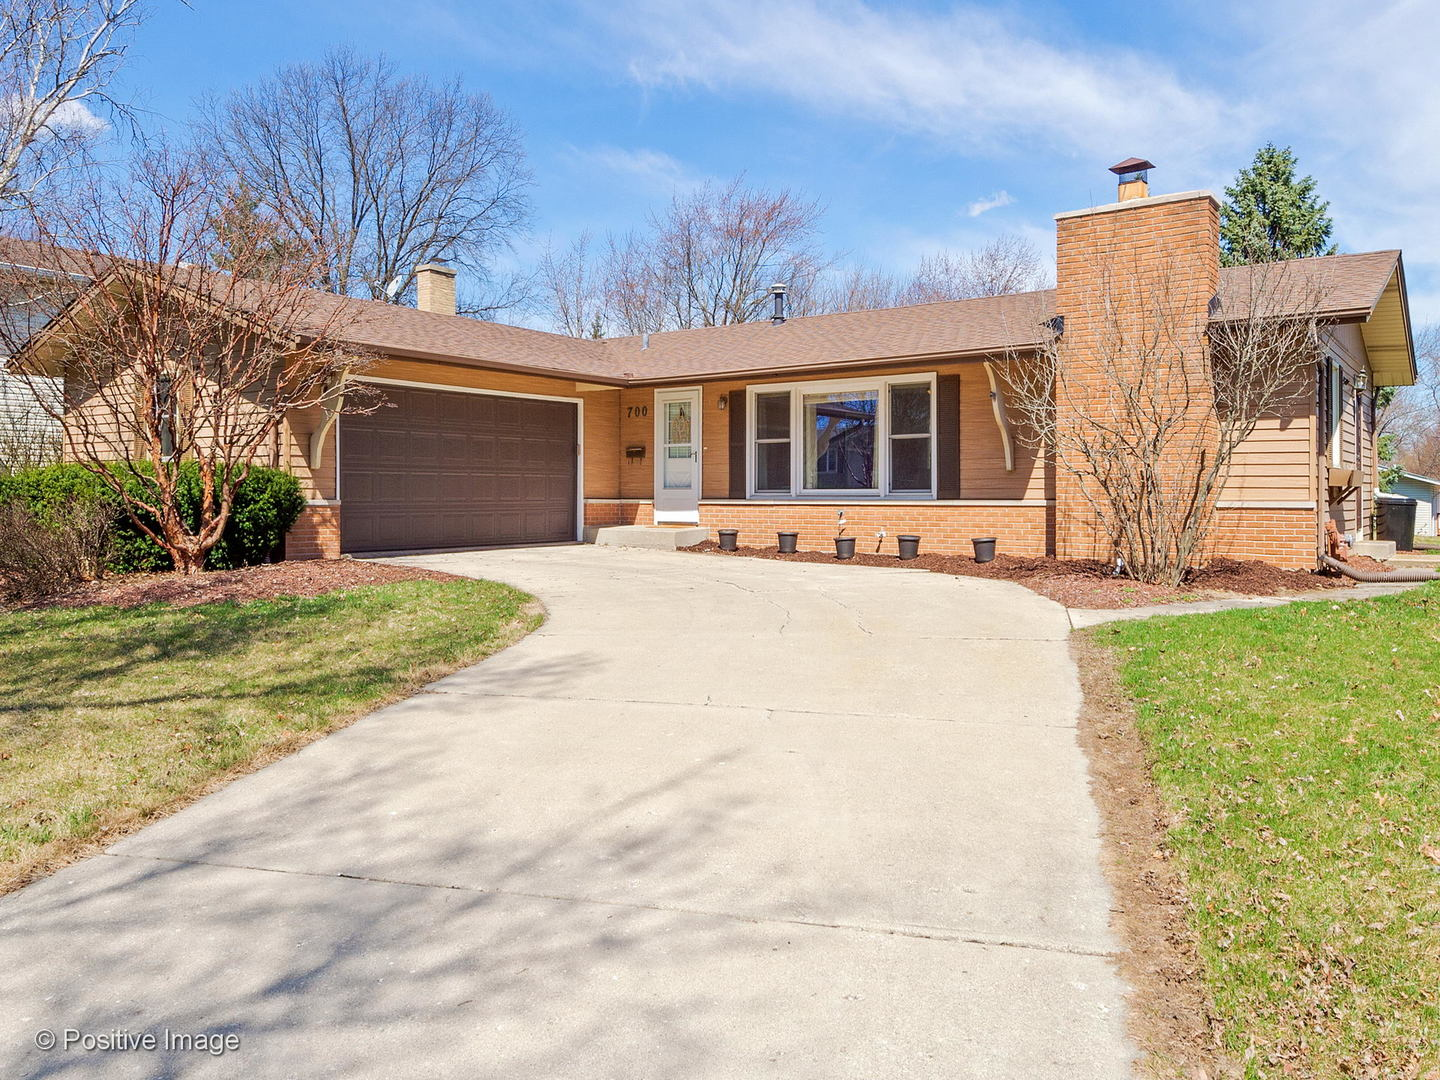 Photo for 700 72nd Street, DOWNERS GROVE, IL 60516 (MLS # 10341994)